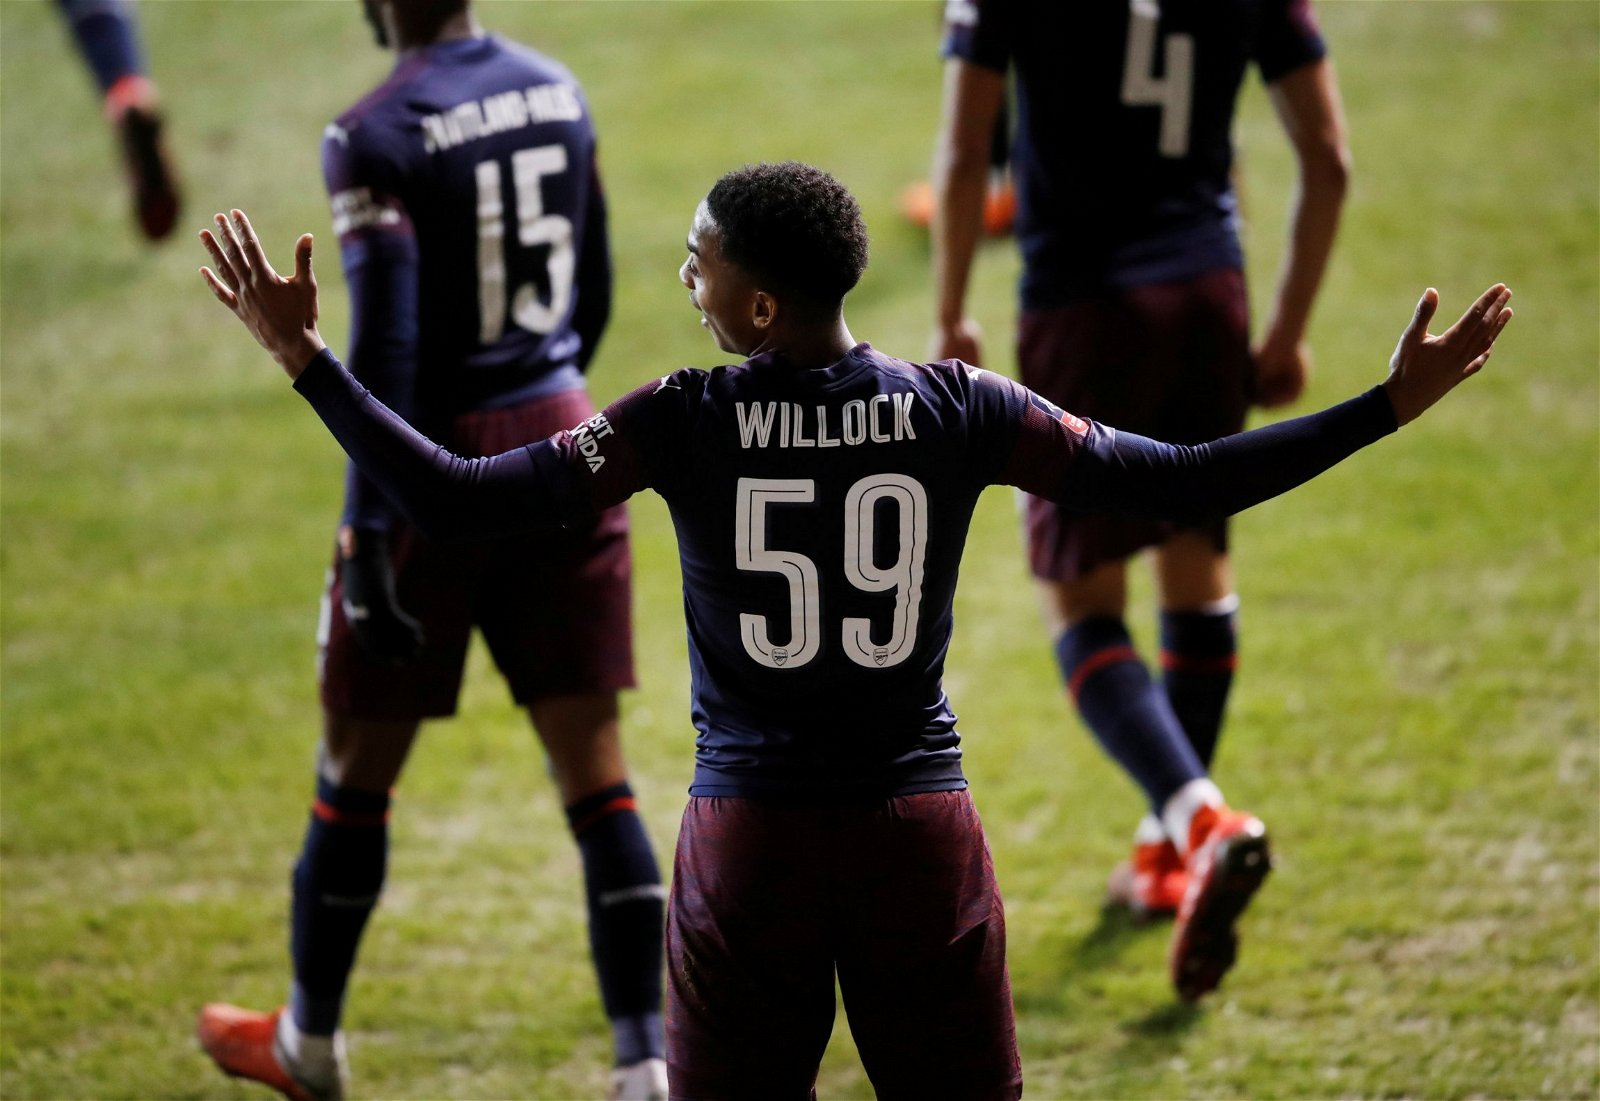 Joe Willock celebrates scoring against Blackpool